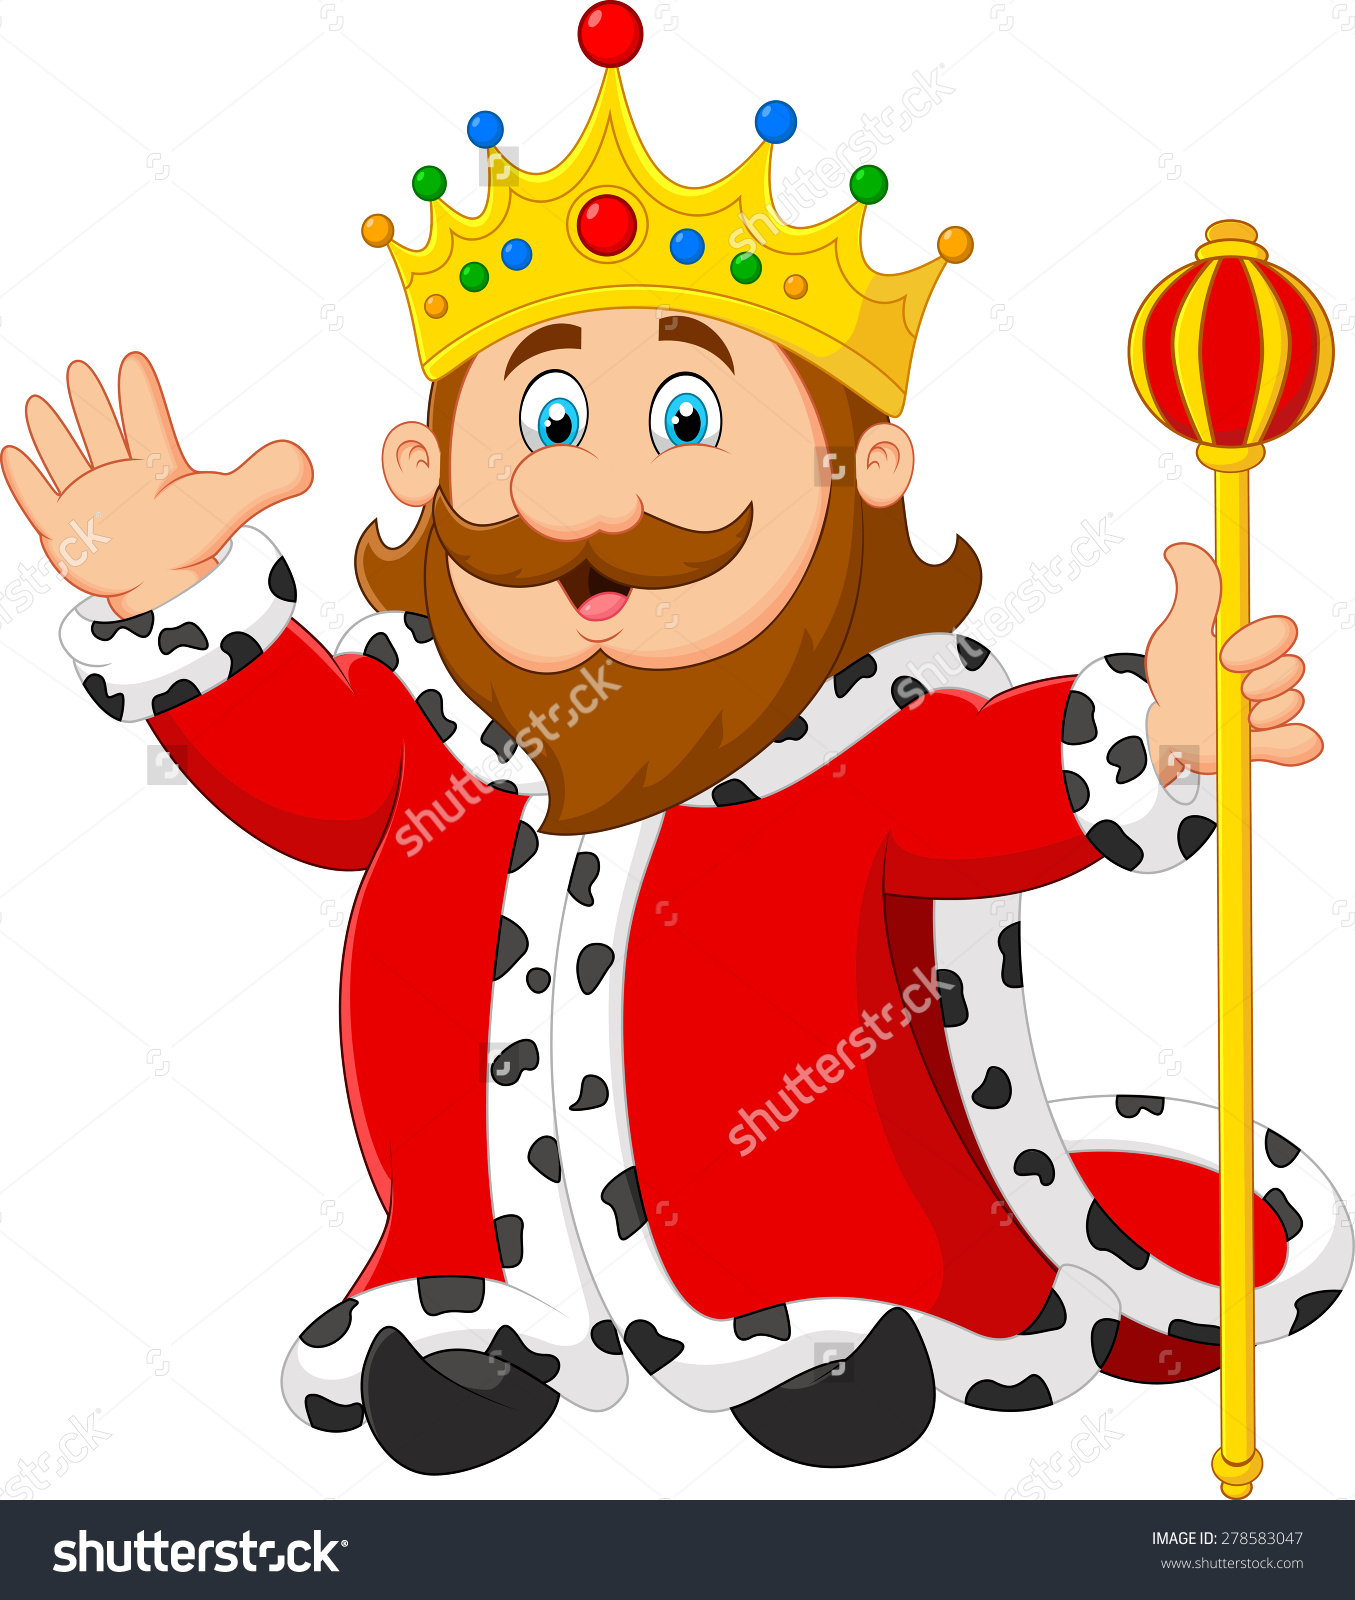 King Clipart .-King Clipart .-16